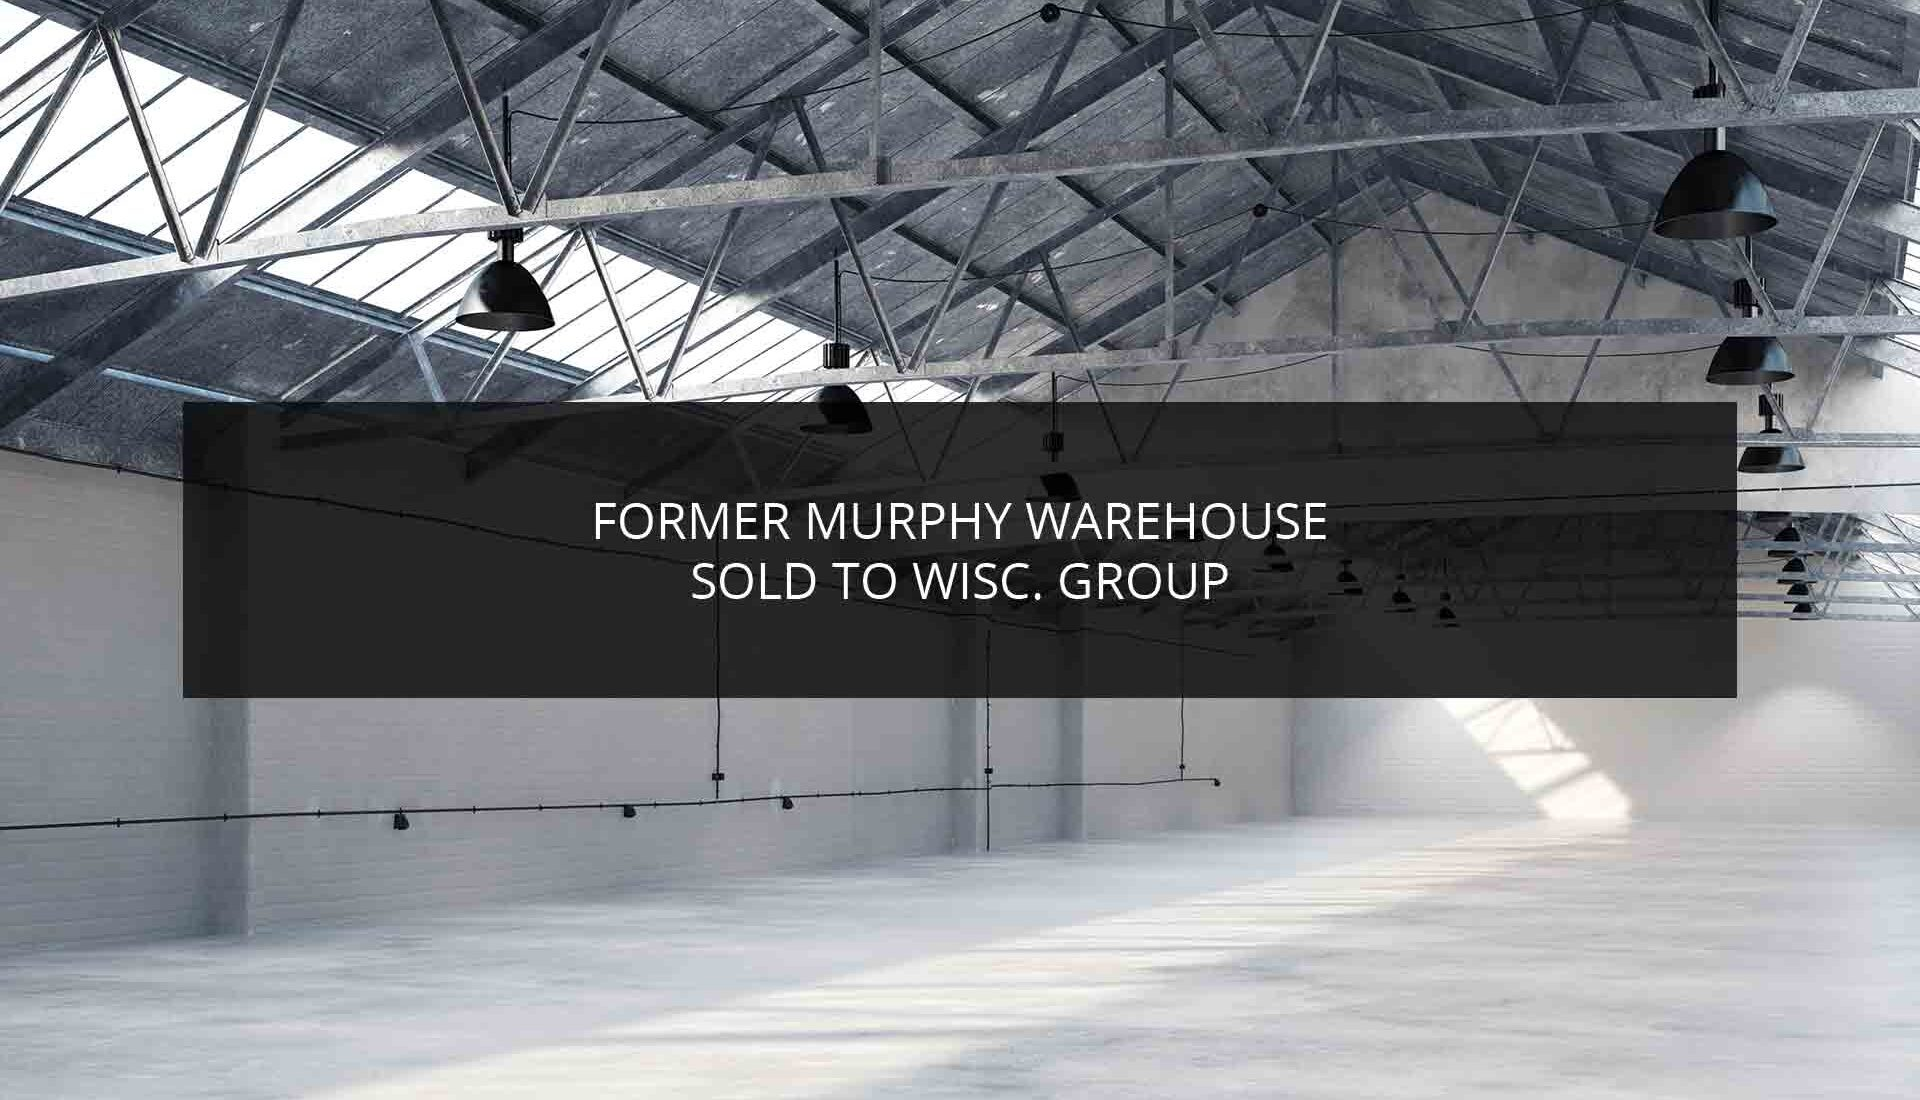 Former Murphy Warehouse Sold to Wisc. Group